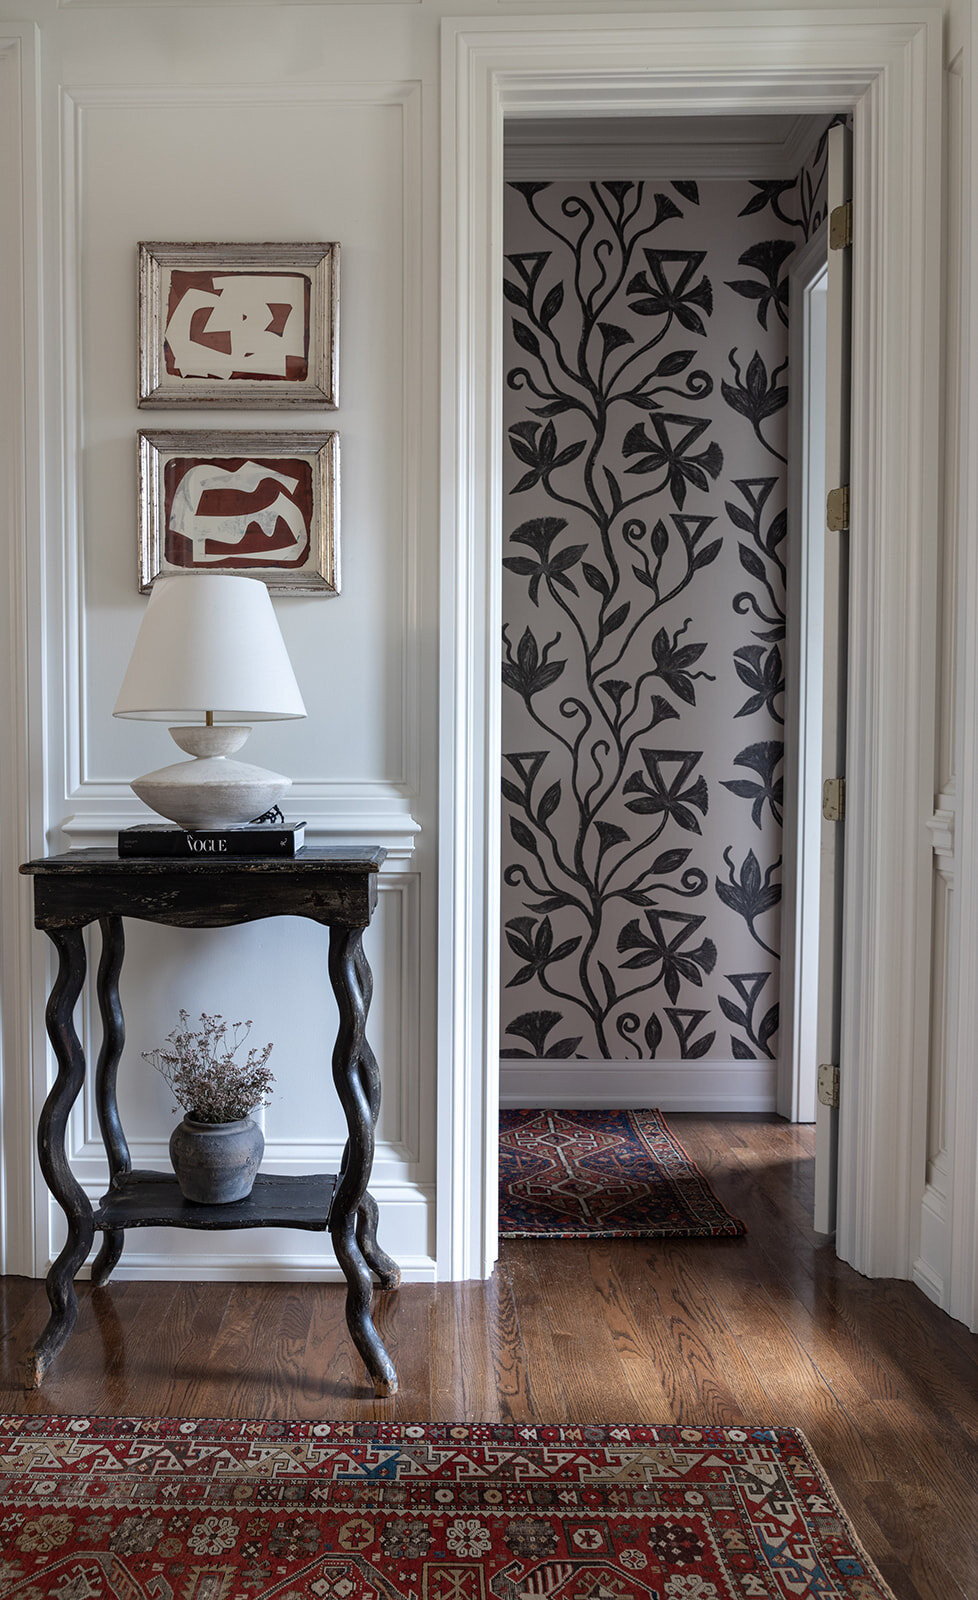 floral wallpaper, entry interior design, curved console table